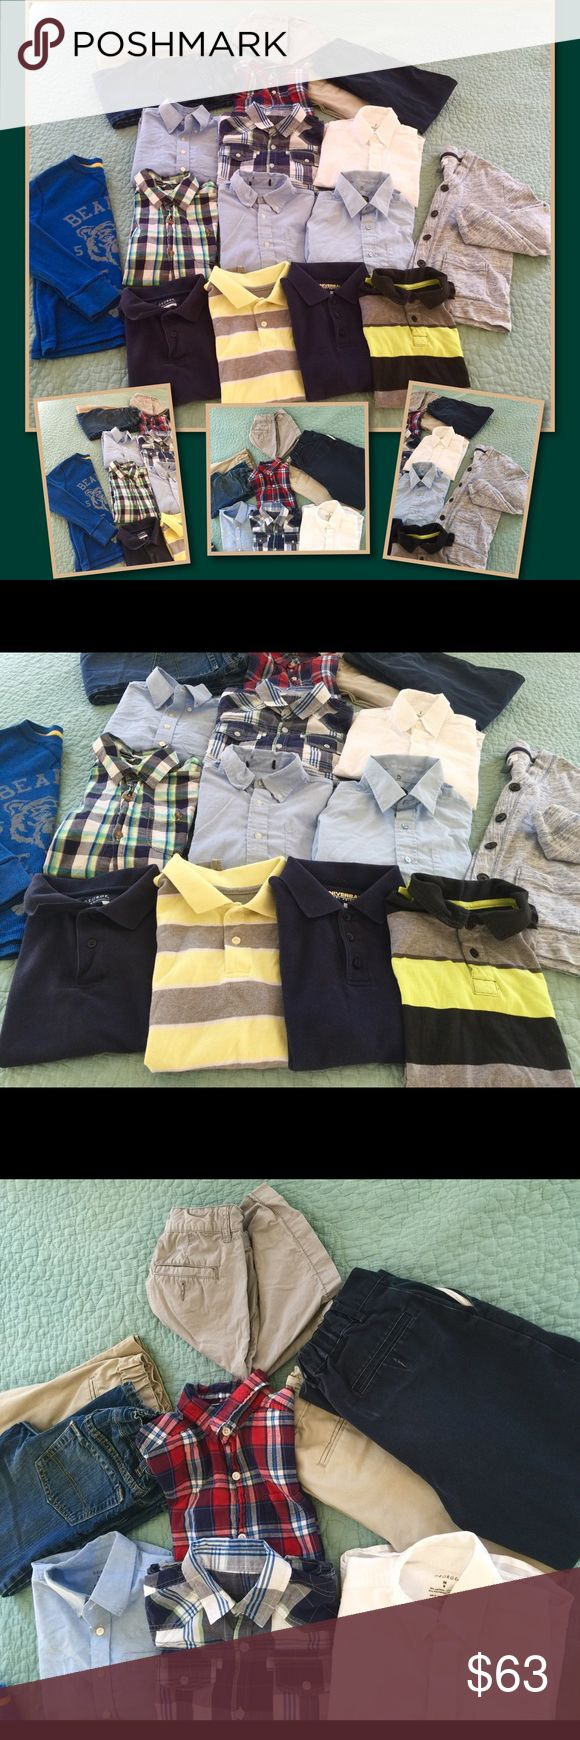 Boys 7/8 lot Boys size 7/8 lot. Four short sleeve polos. Seven button downs (the top red/blue plaid shirt is short sleeve, the rest are all long sleeve). One long sleeve button up cardigan. One blue long sleeve shirt on the left side of the cover photo. Two pair of khaki pants. One pair of navy slacks. One pair of jeans. And lastly one pair of grey shorts seen at the very top of the cover photo. Price is for the entire lot. Other